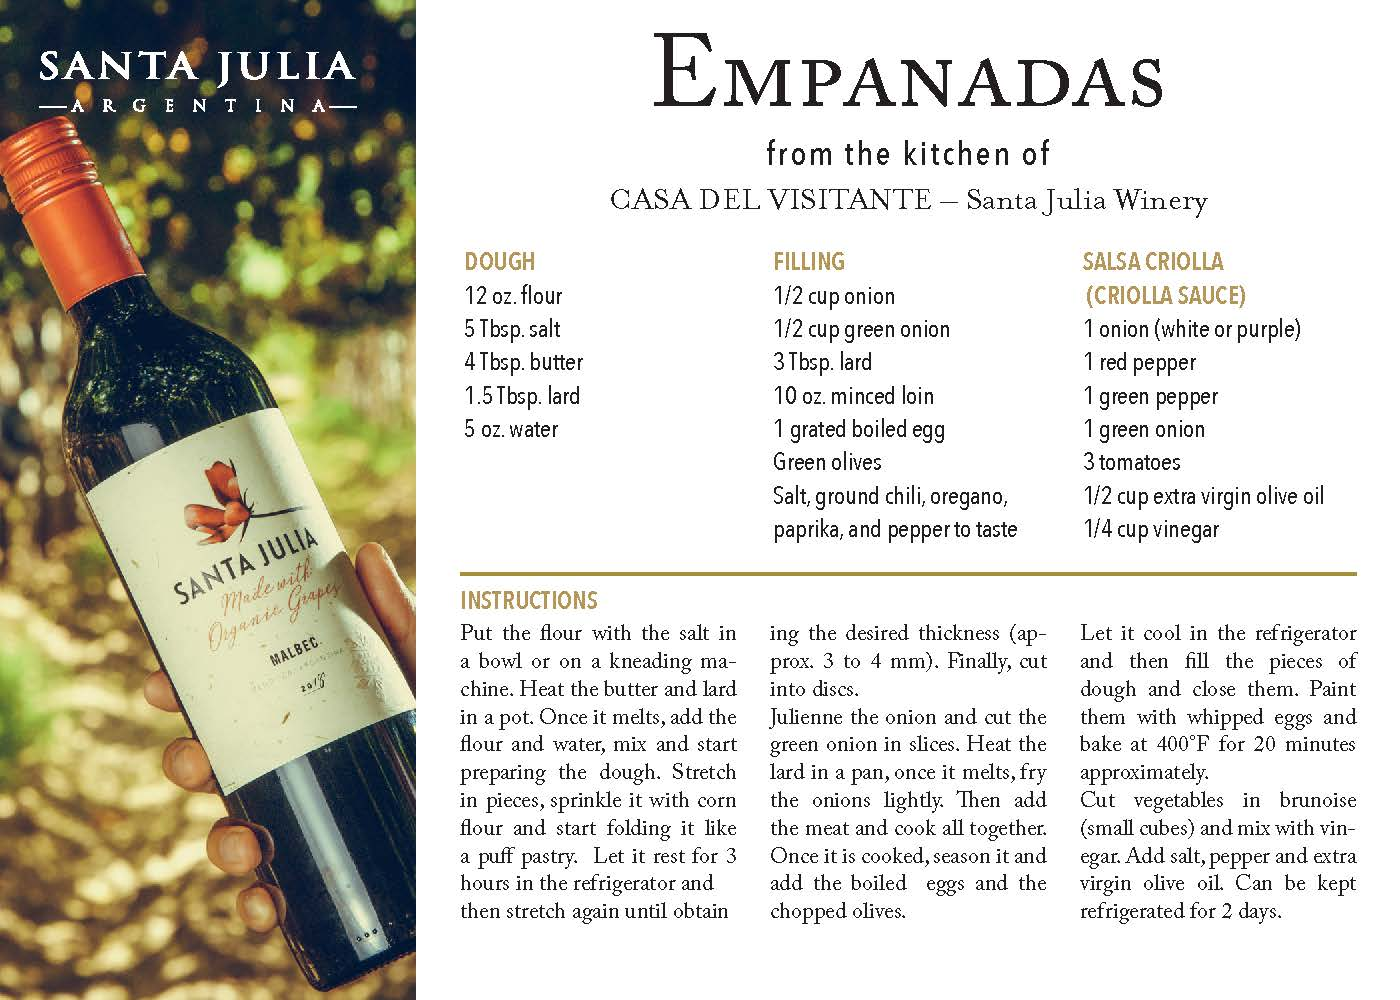 Empanada from the kitchen by Santa Julia